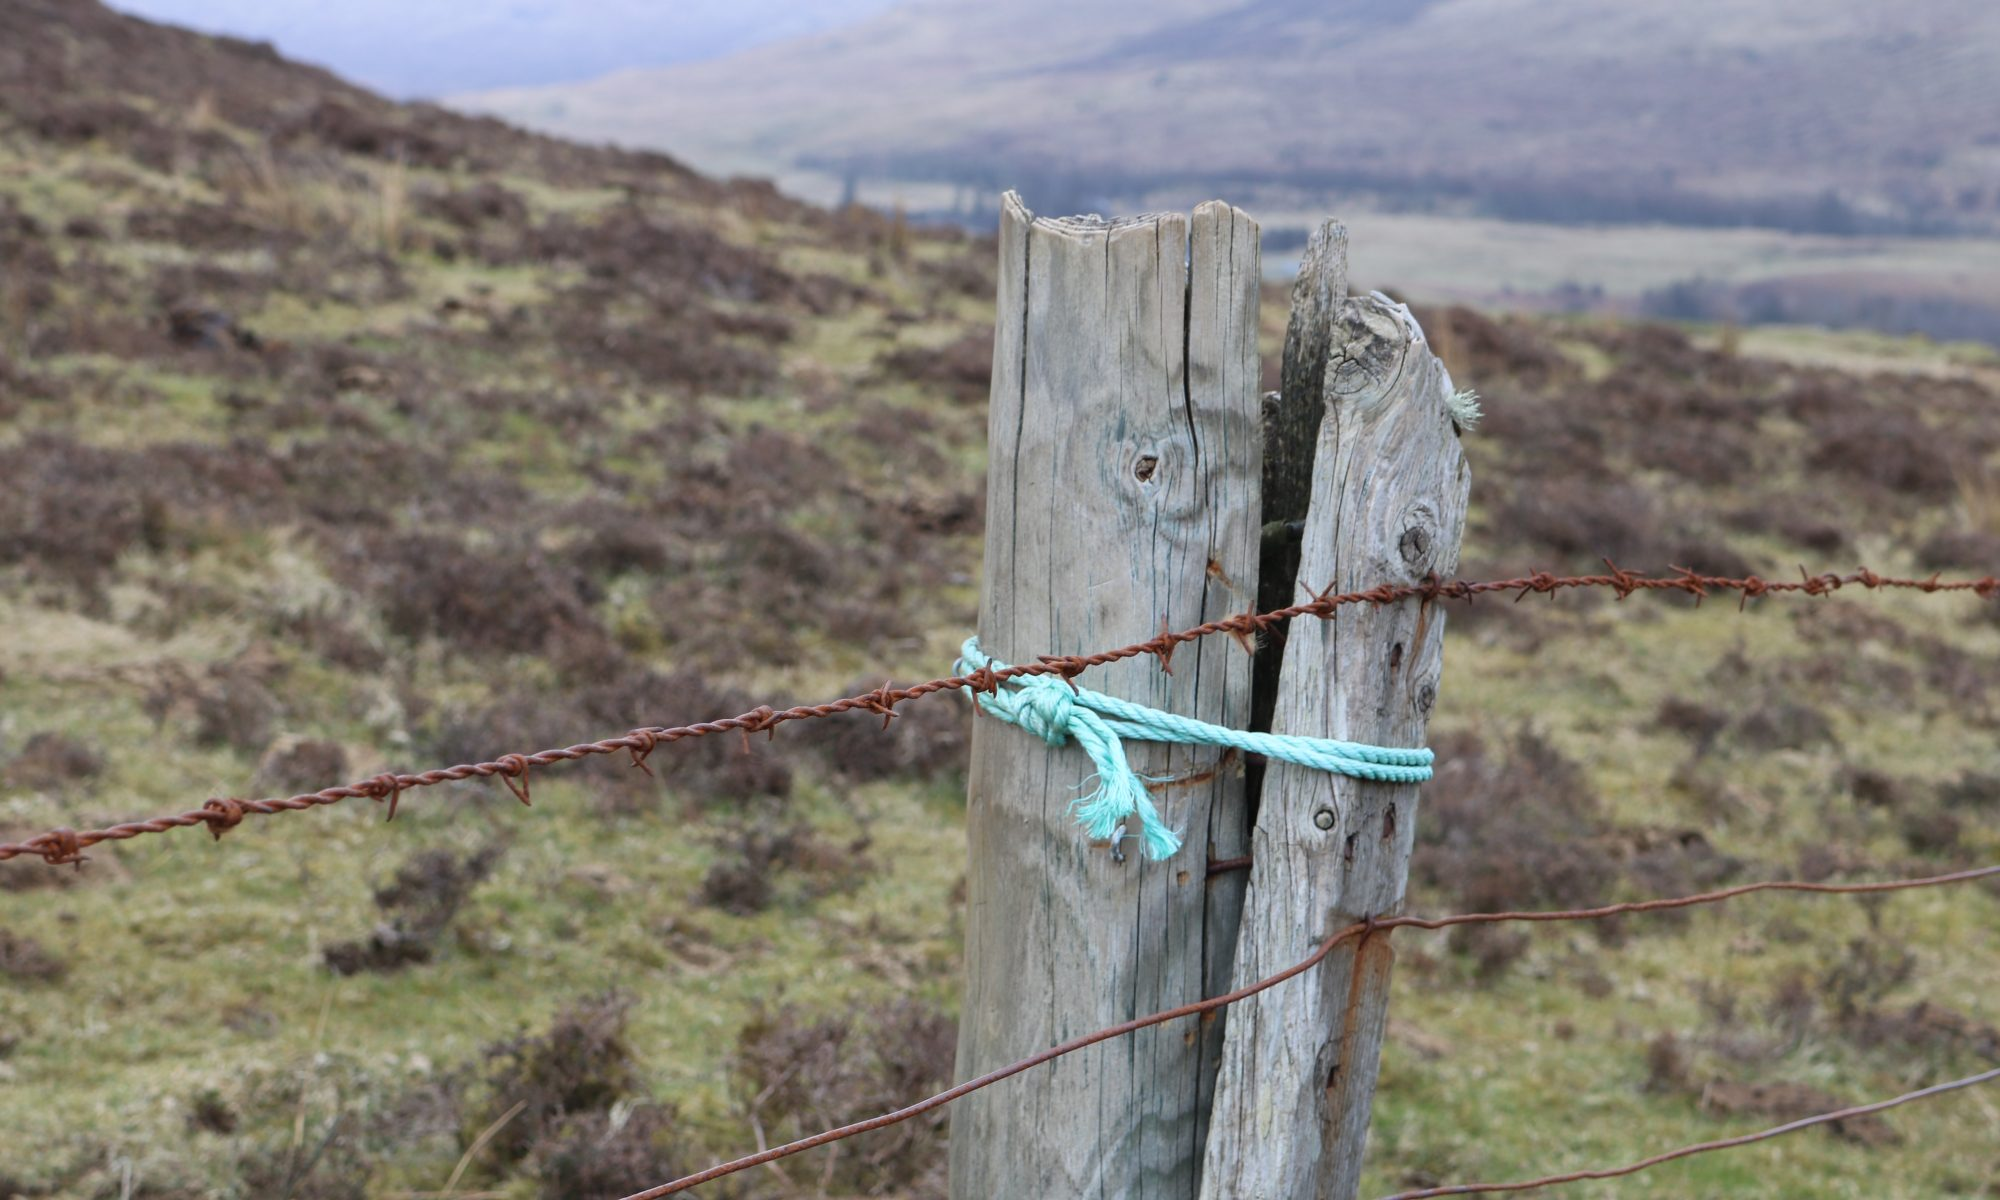 Crofter's Twine on fencepost